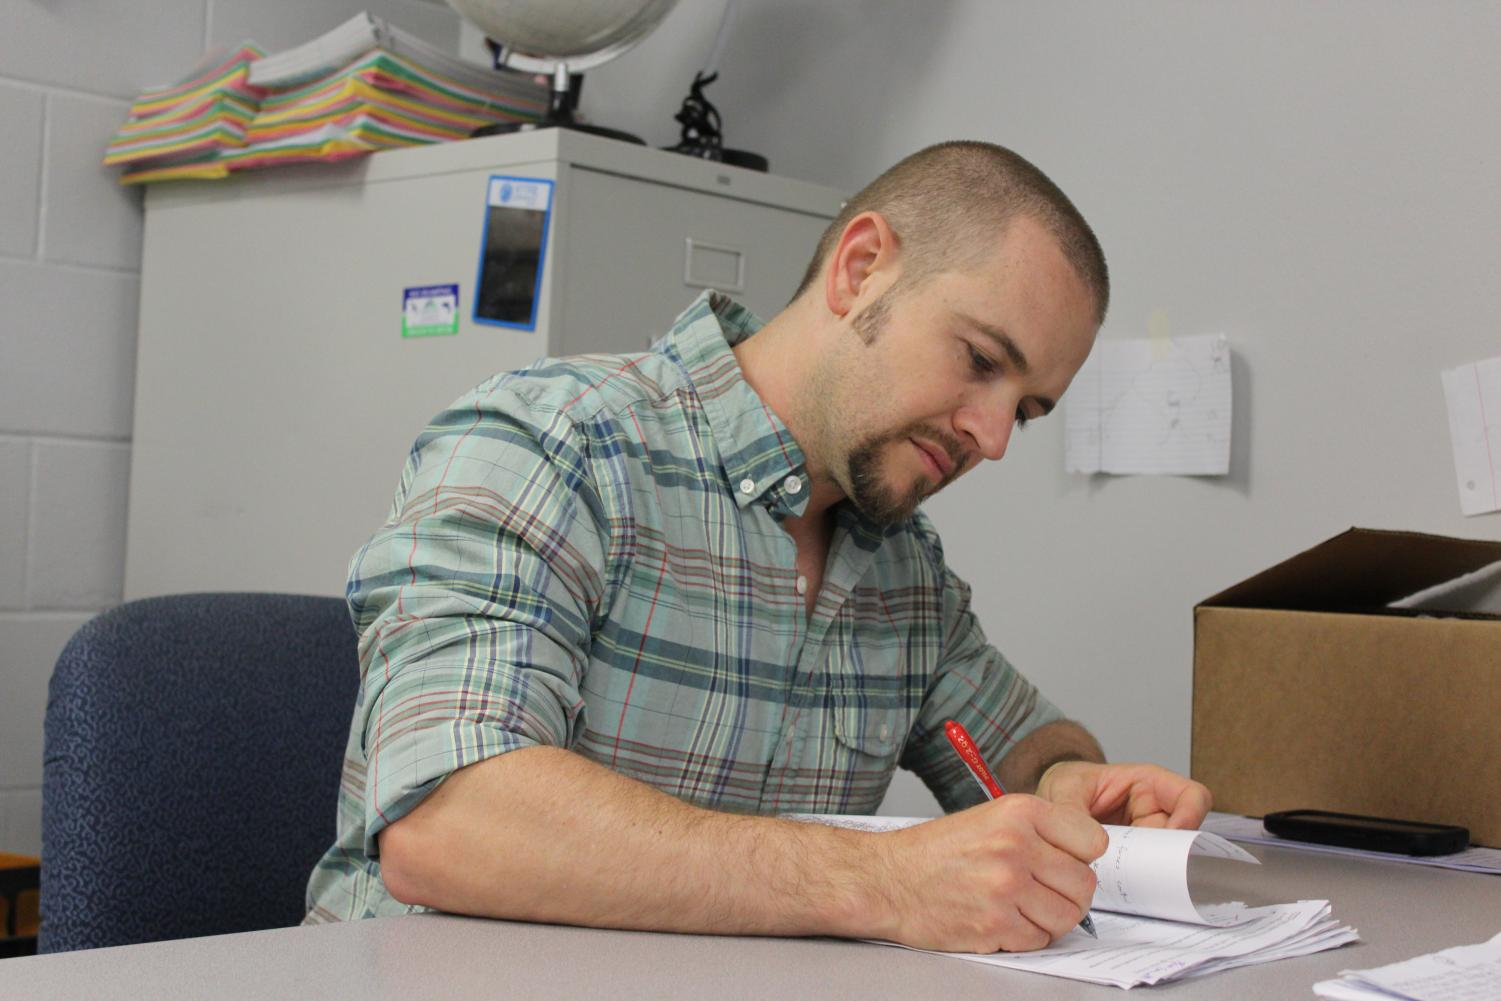 Marc Pooler quietly grades papers at his desk. His hard work and outgoing personality led to his win.